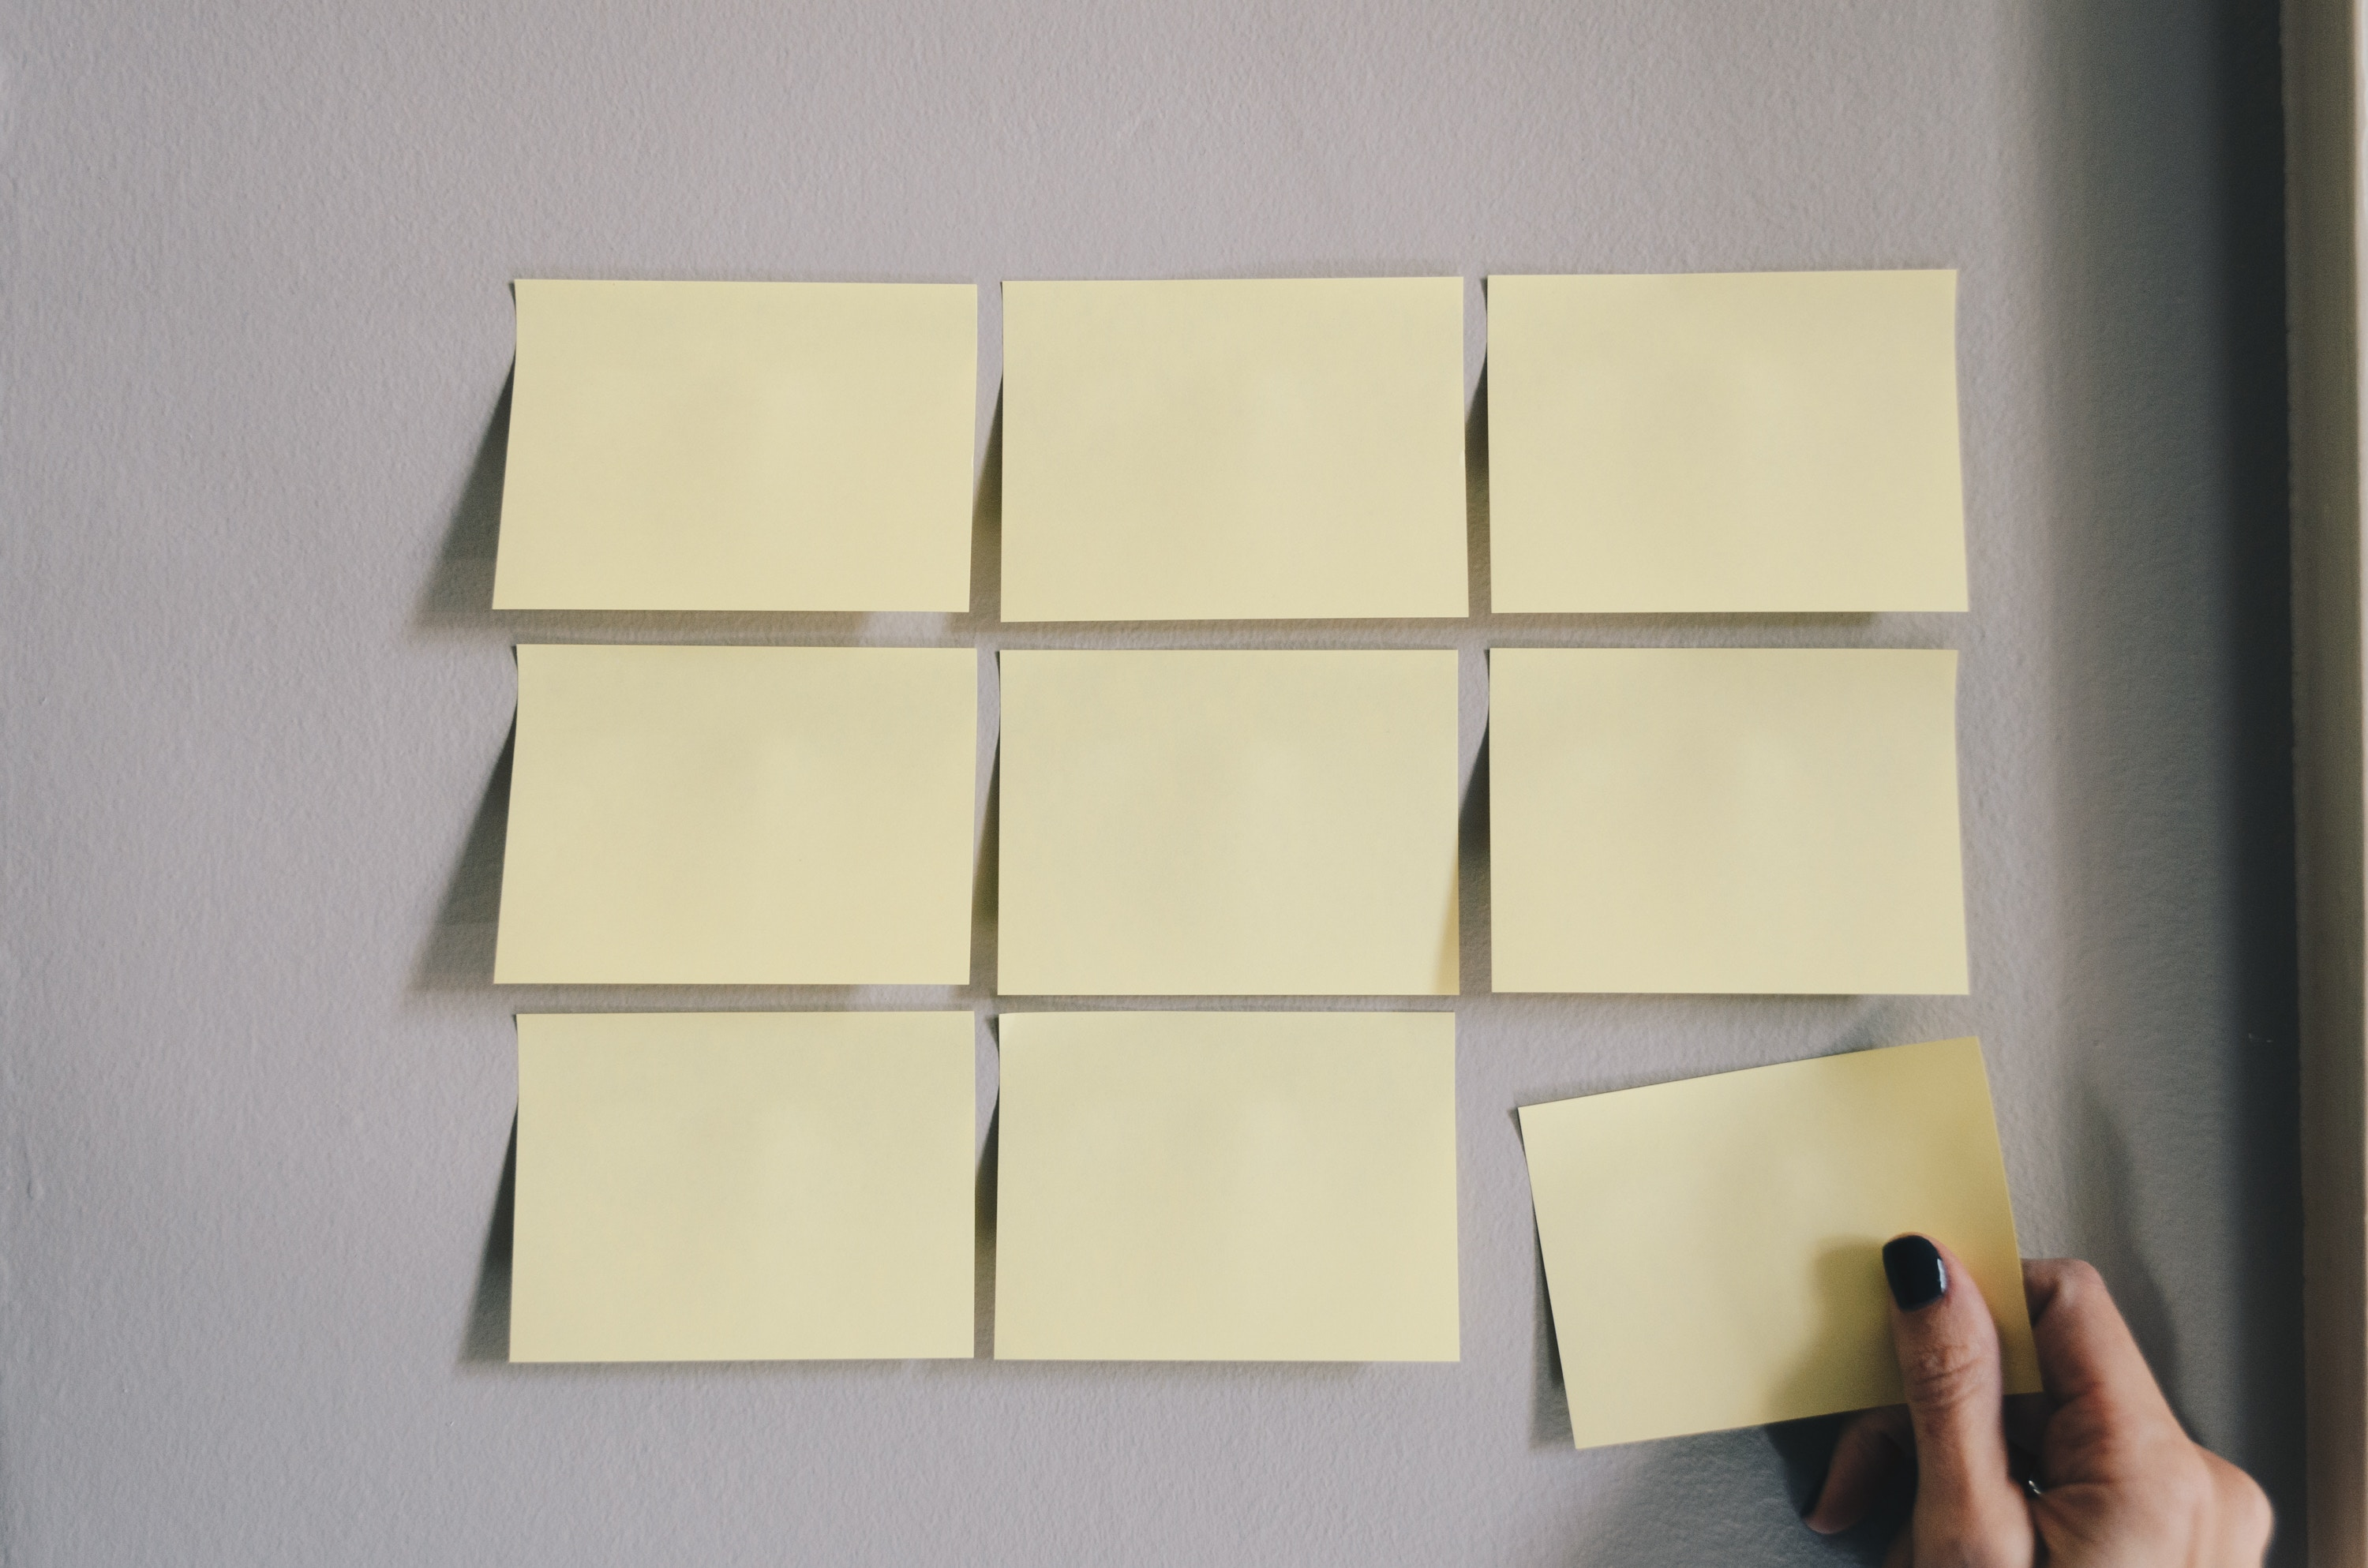 Blank sticky notes on a wall.